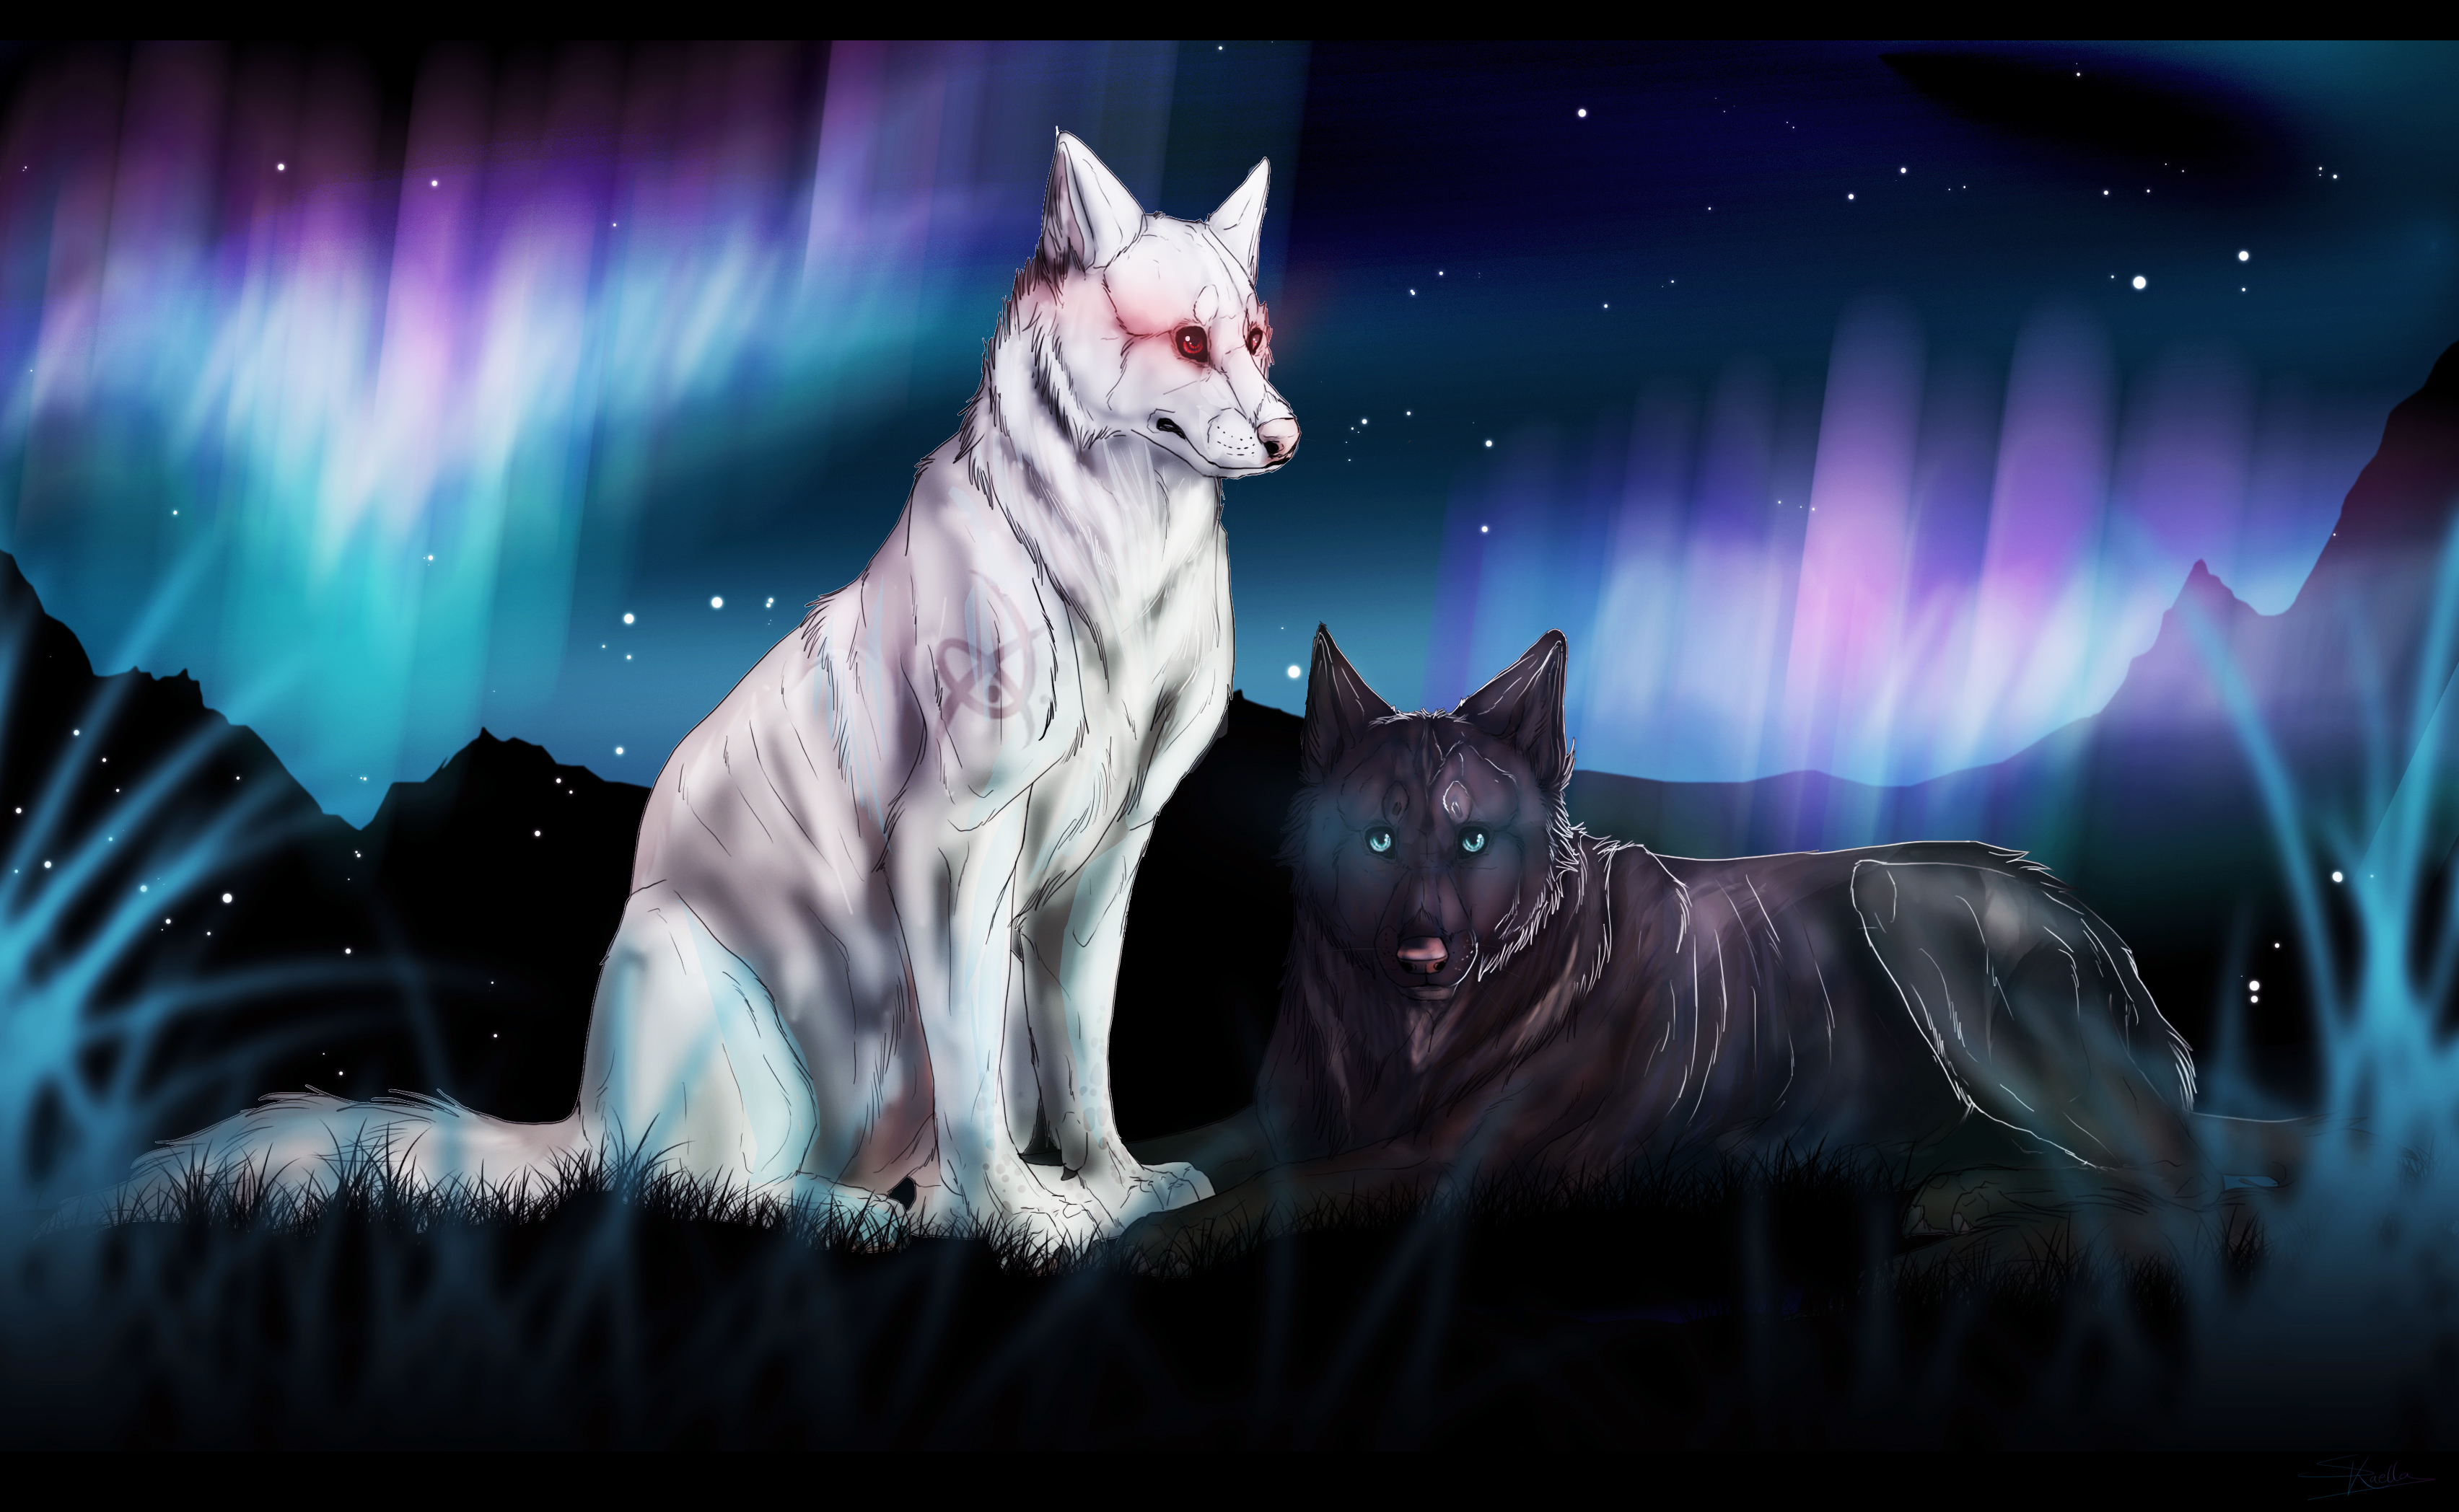 Dessins de chiens - Page 2 __lost_in_paradise___by_skaella-d6a3gri